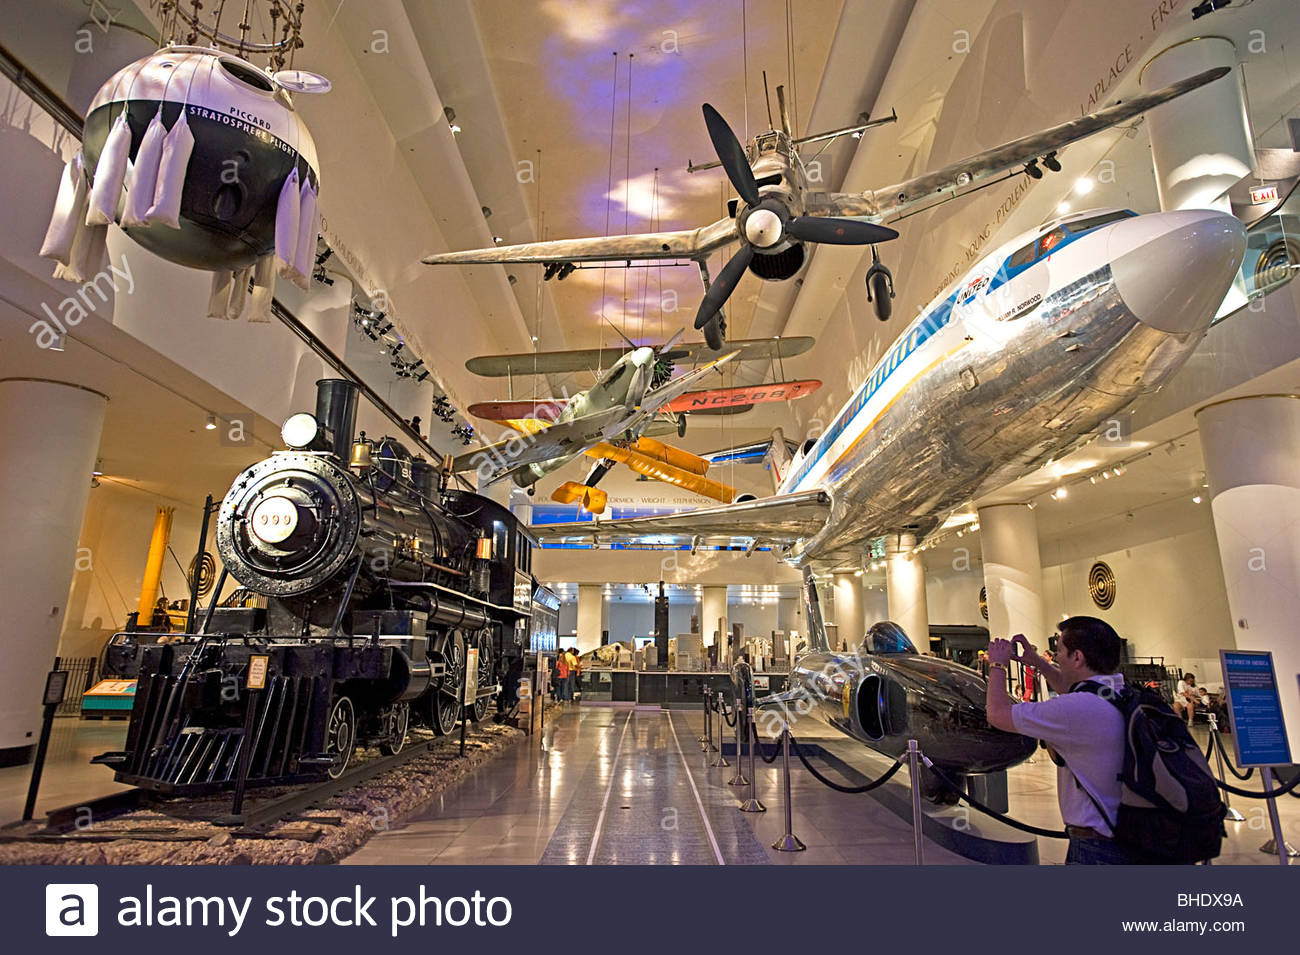 Museum of Science and Industry. Chicago, Illinois, usa - Stock Image